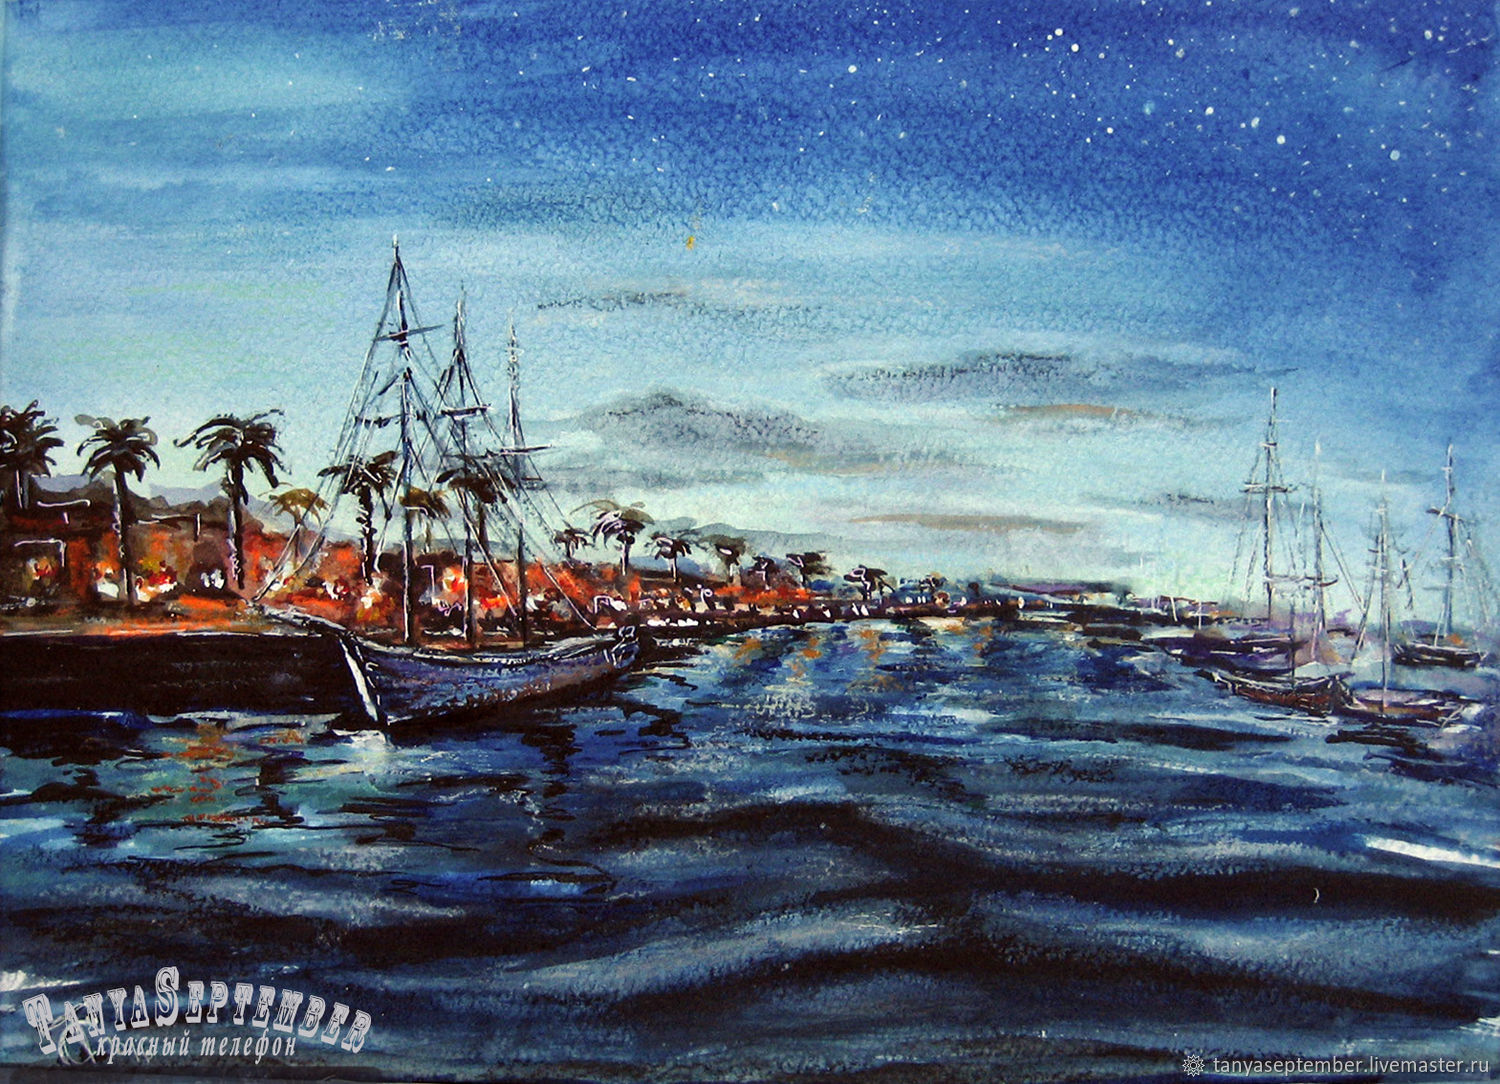 Painting watercolor IN the SOUTH PORT (with Passepartout), Pictures, Moscow,  Фото №1